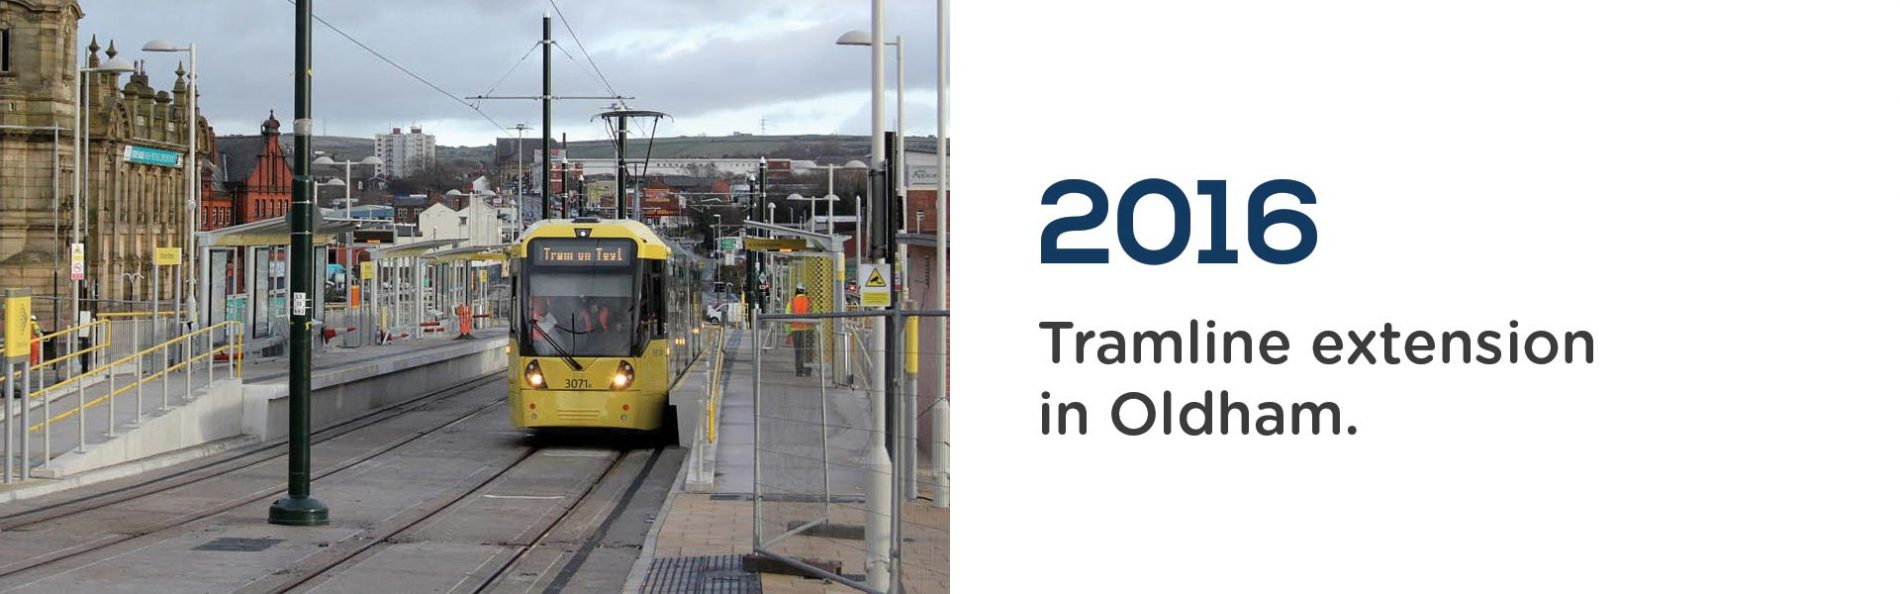 in 2016 the Tramline extension in Oldham is completed. Wrigley Claydon Solicitors, Trusted for 200 years